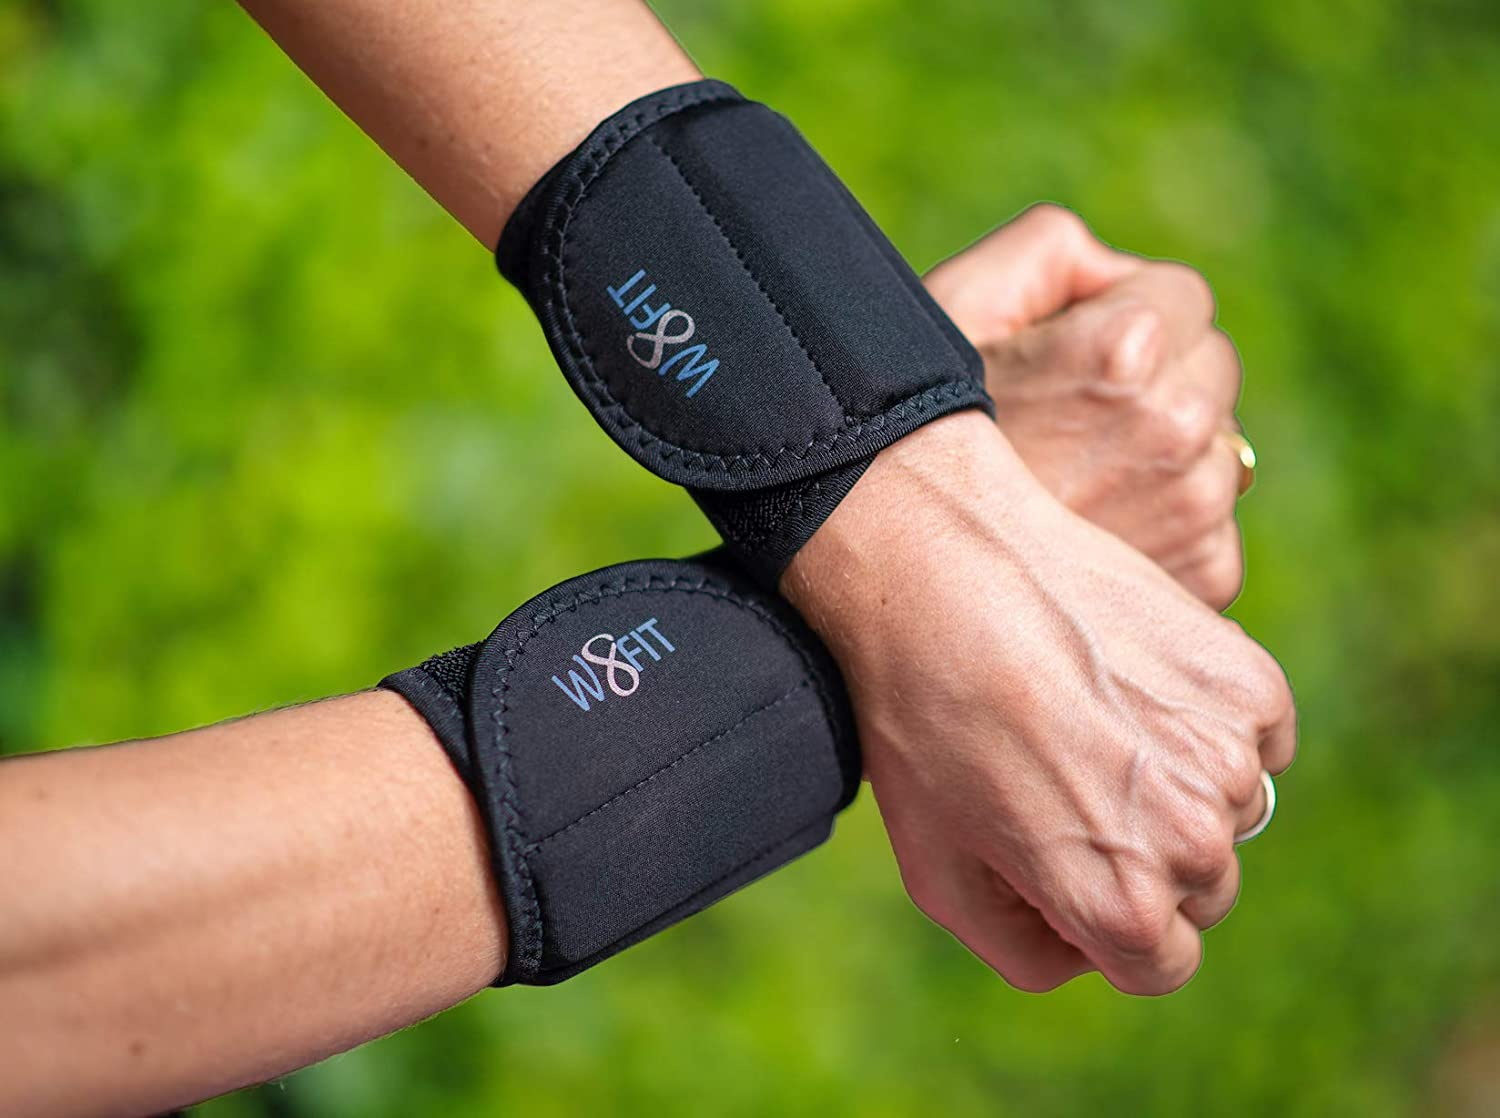 discount W8FIT Adjustable Wrist Arm Weights up to 1.7 All stores are sold lbs